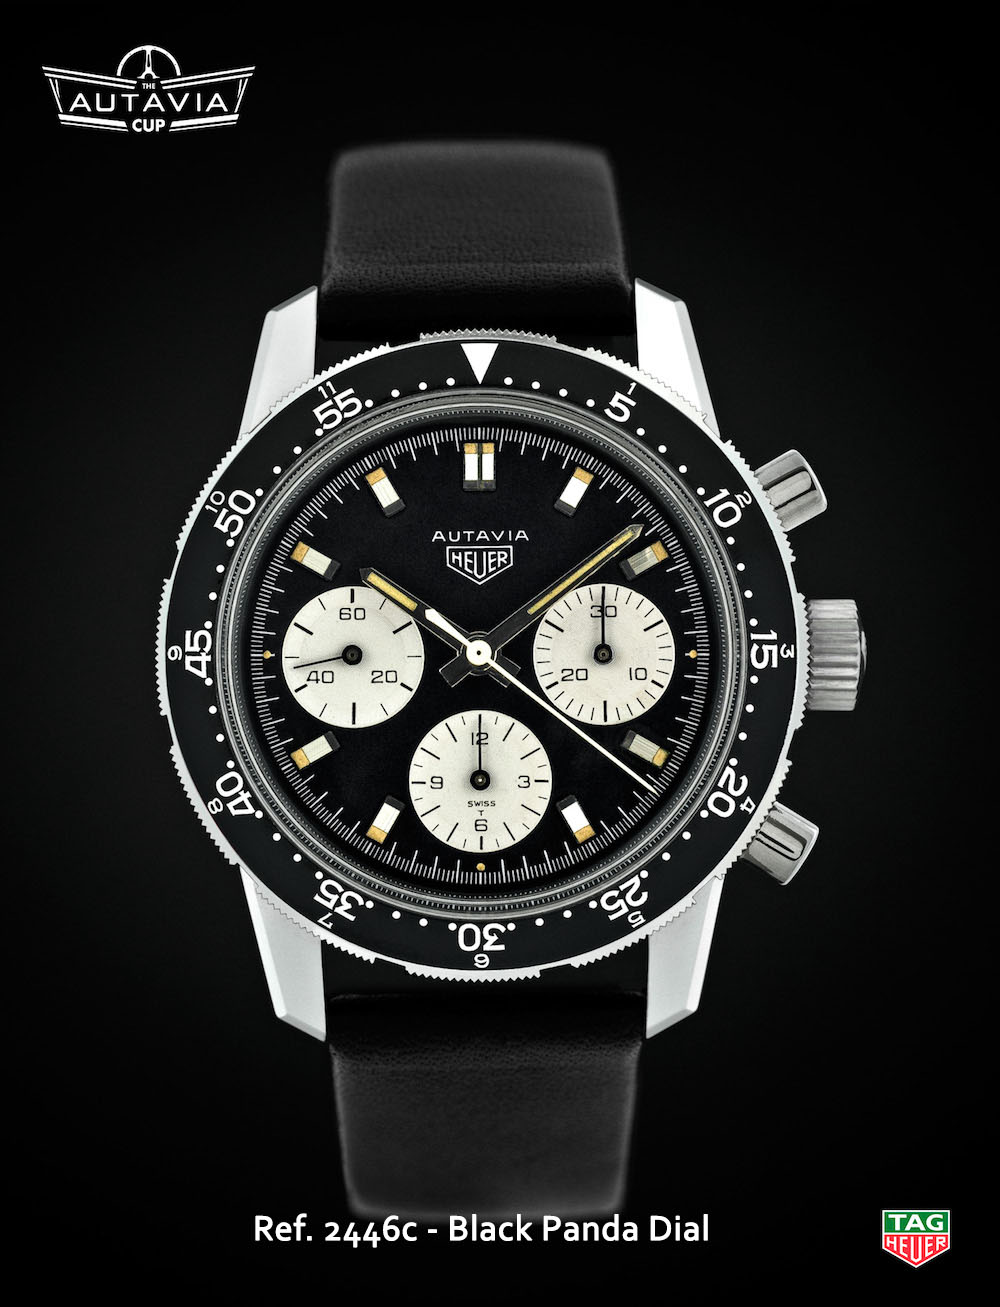 TAG Heuer Autavia - The Autavia Cup - 11-2446c-NS